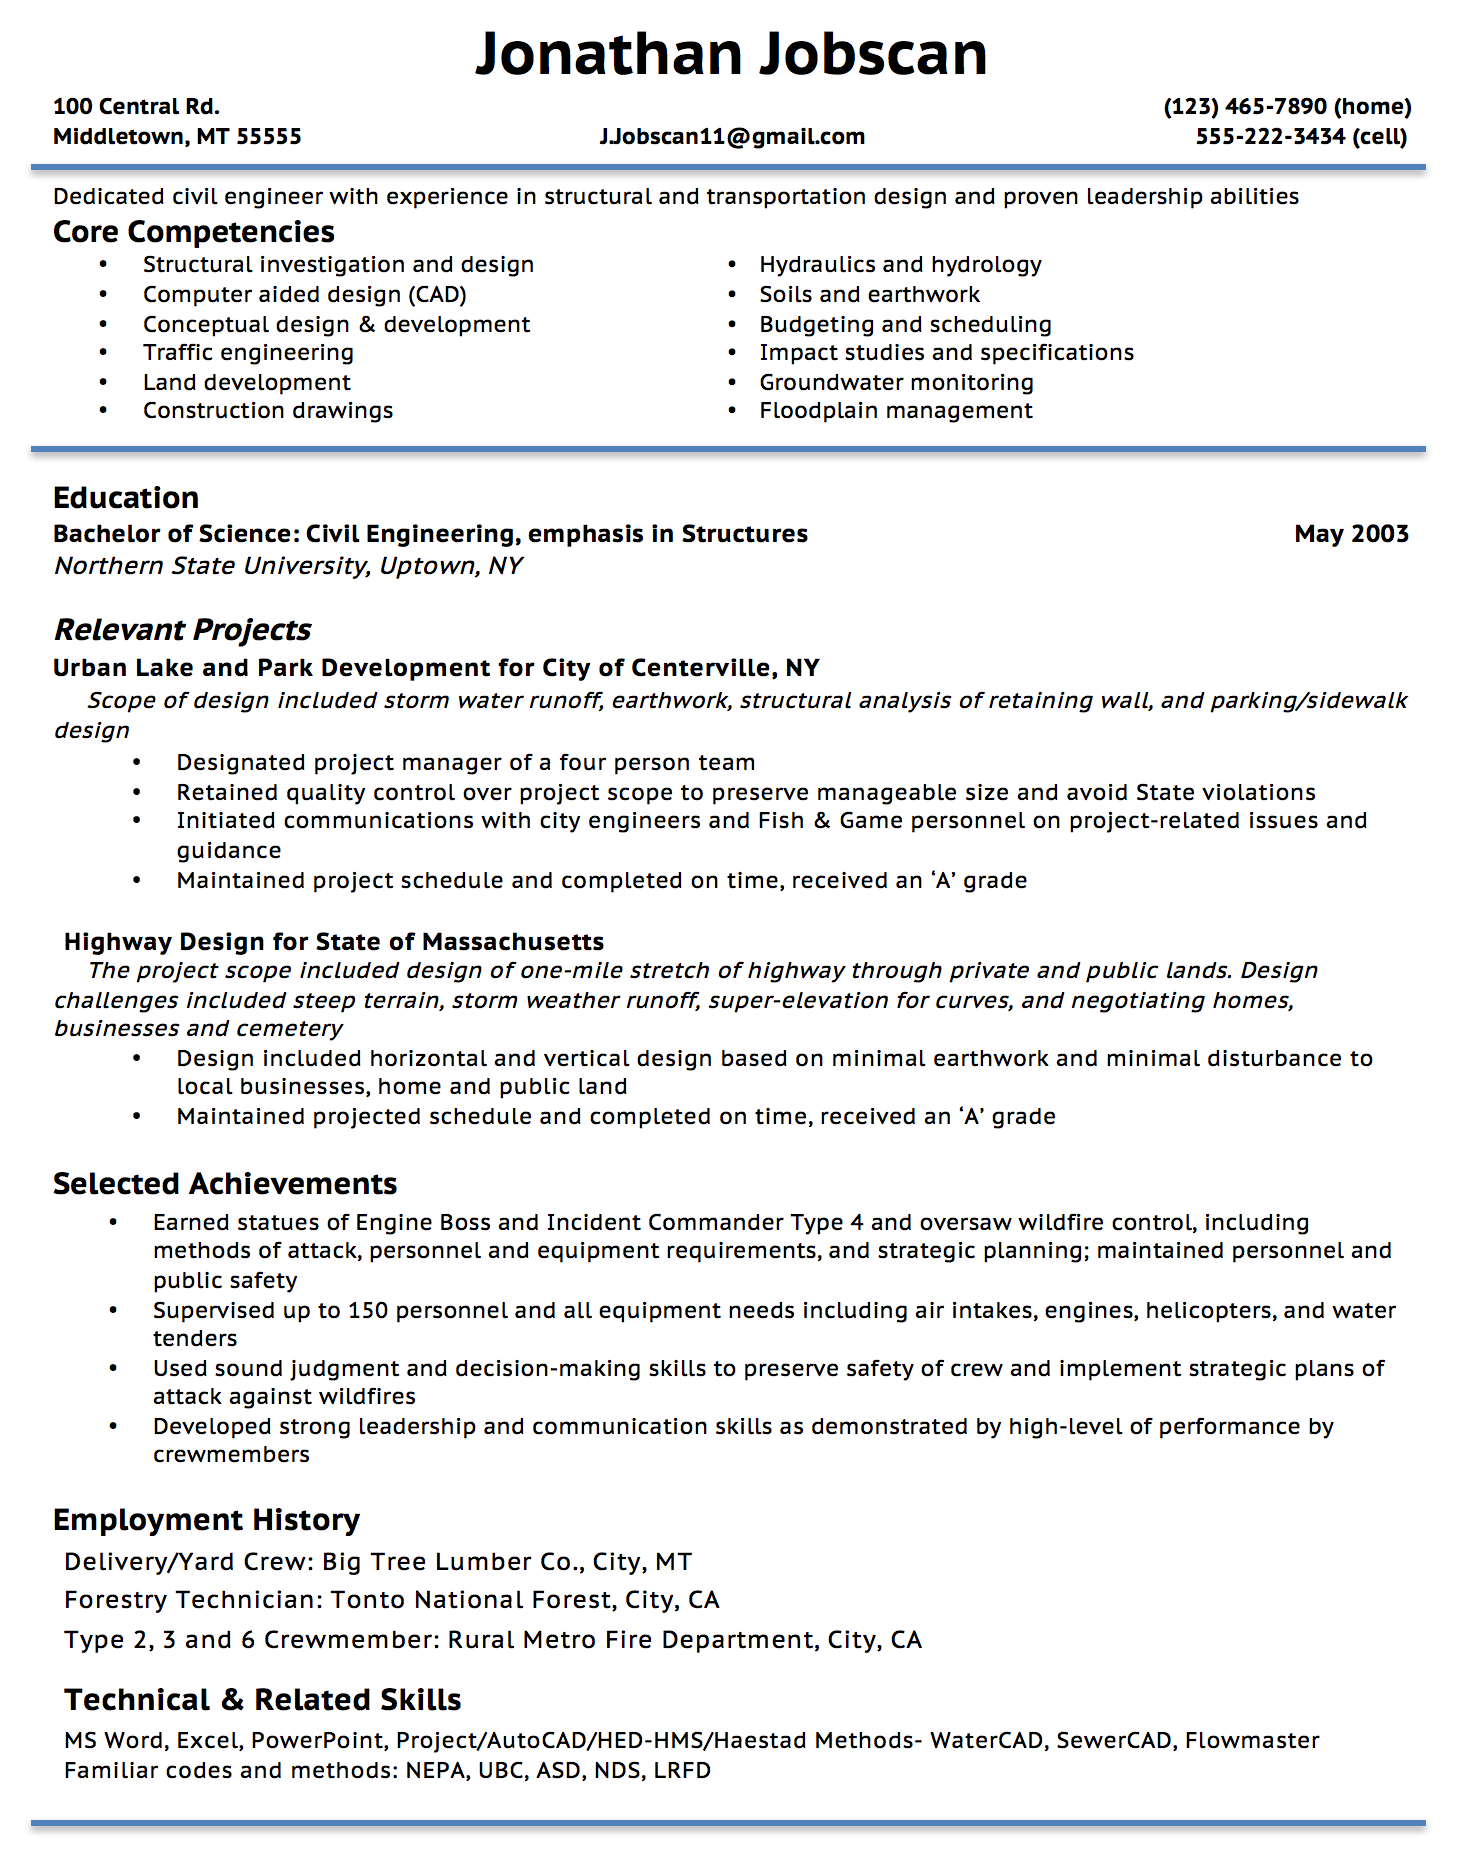 Opposenewapstandardsus  Splendid Resume Writing Guide  Jobscan With Lovely Example Of A Functional Resume Format With Delightful How To Write A Successful Resume Also How To Write A Resume For Internship In Addition Electrical Engineer Resume Sample And Aba Therapist Resume As Well As Logistics Resume Samples Additionally Account Manager Resume Sample From Jobscanco With Opposenewapstandardsus  Lovely Resume Writing Guide  Jobscan With Delightful Example Of A Functional Resume Format And Splendid How To Write A Successful Resume Also How To Write A Resume For Internship In Addition Electrical Engineer Resume Sample From Jobscanco